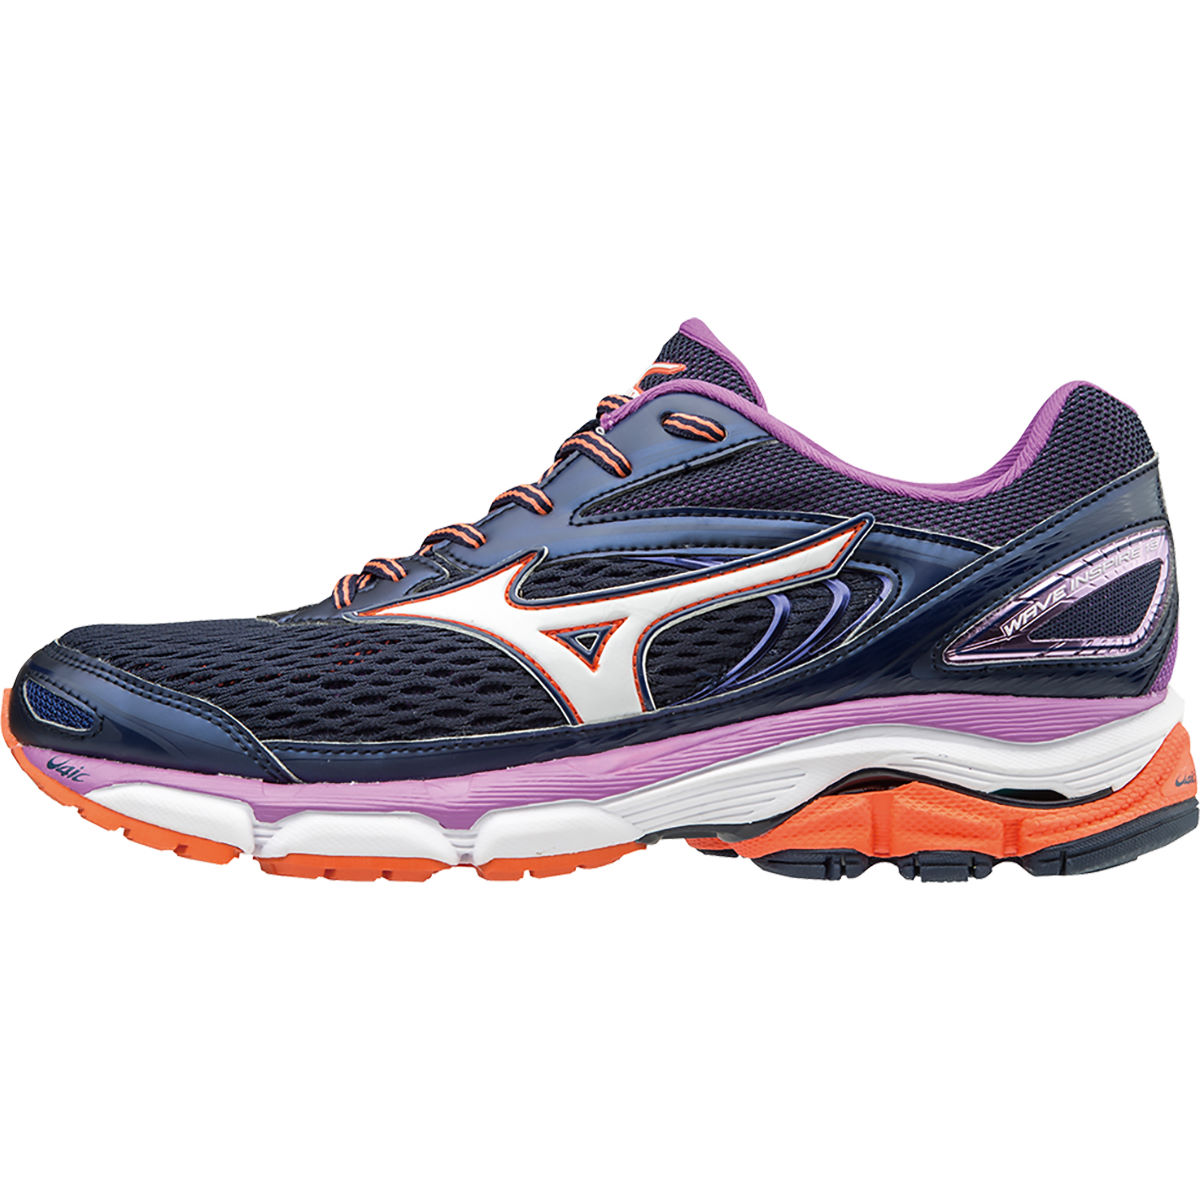 Chaussures Femme Mizuno Wave Inspire 13 - UK 4 Peacoat/White/Camell